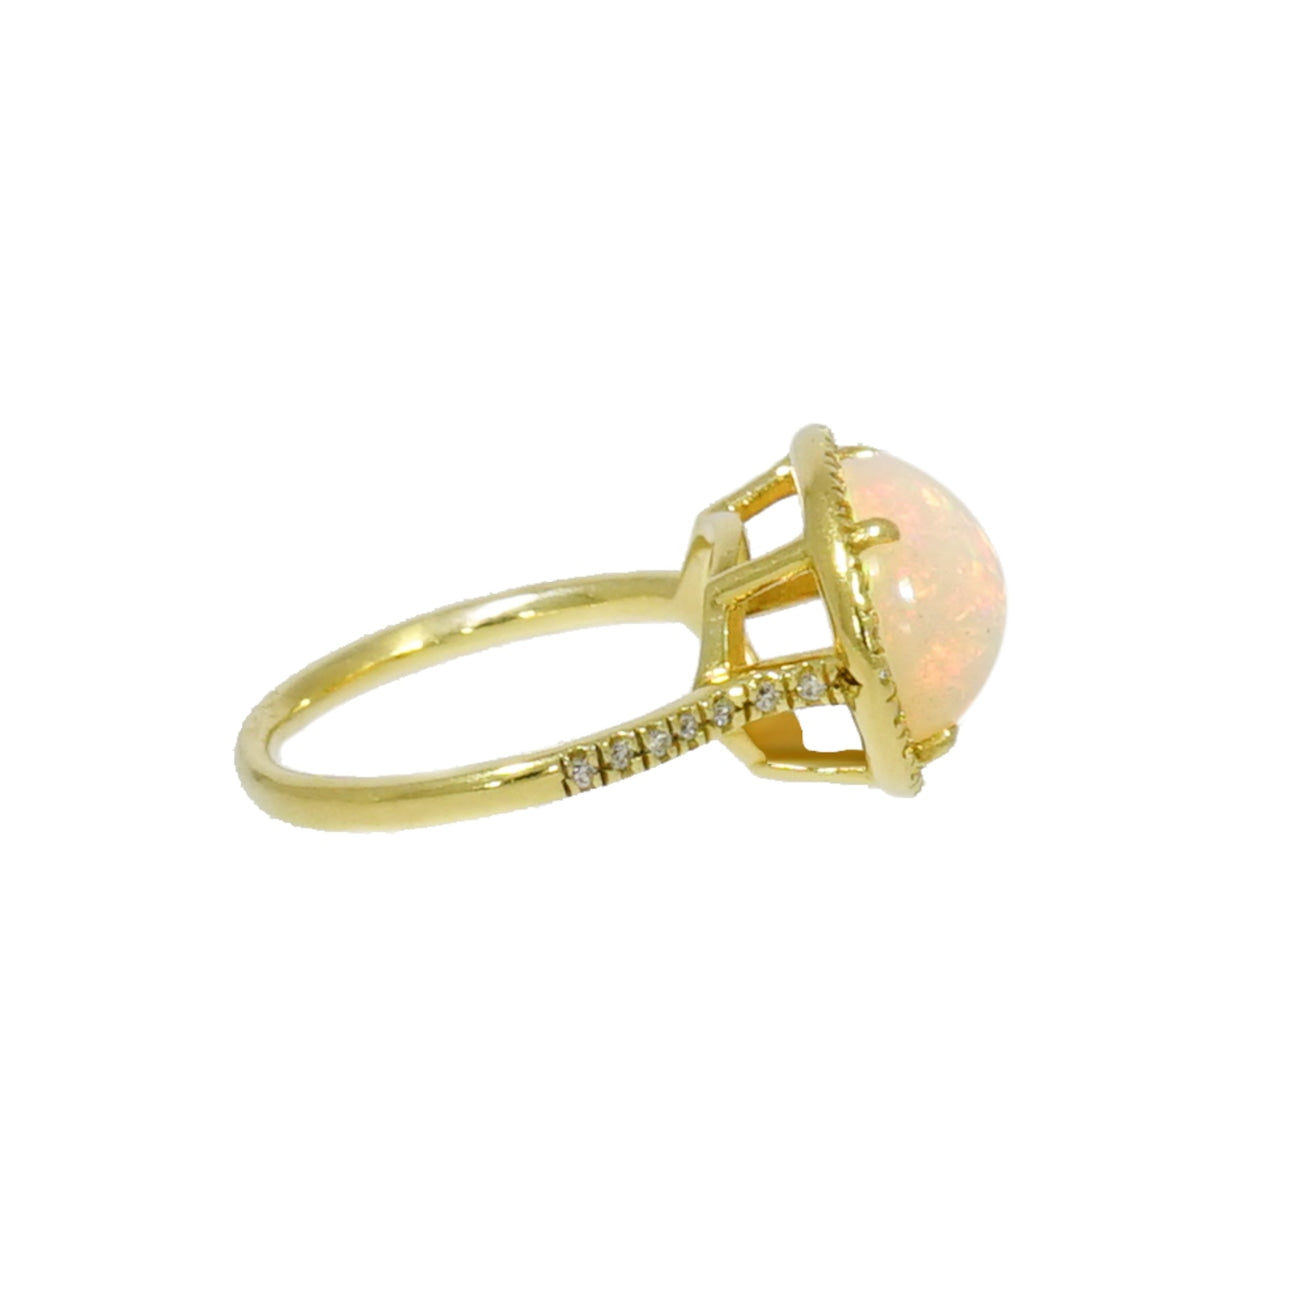 Lauren K Jewelry - Opal & Diamond Yellow Gold Ring | Manfredi Jewels